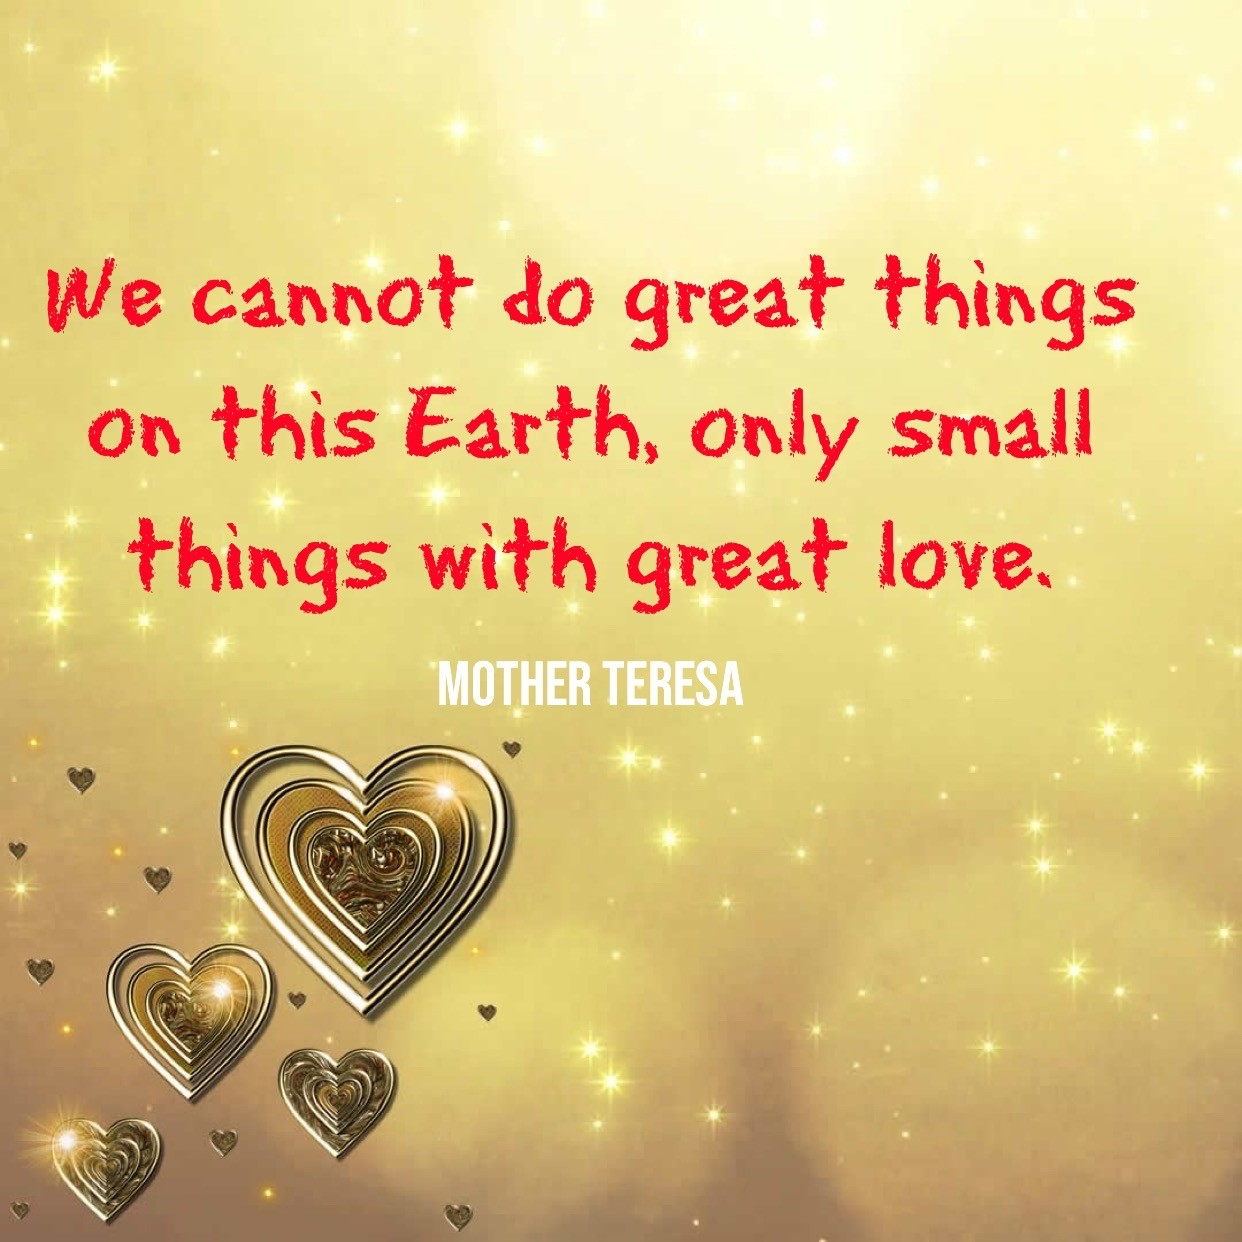 We Cannot Do Great Things On This Earth - People Development Magazine